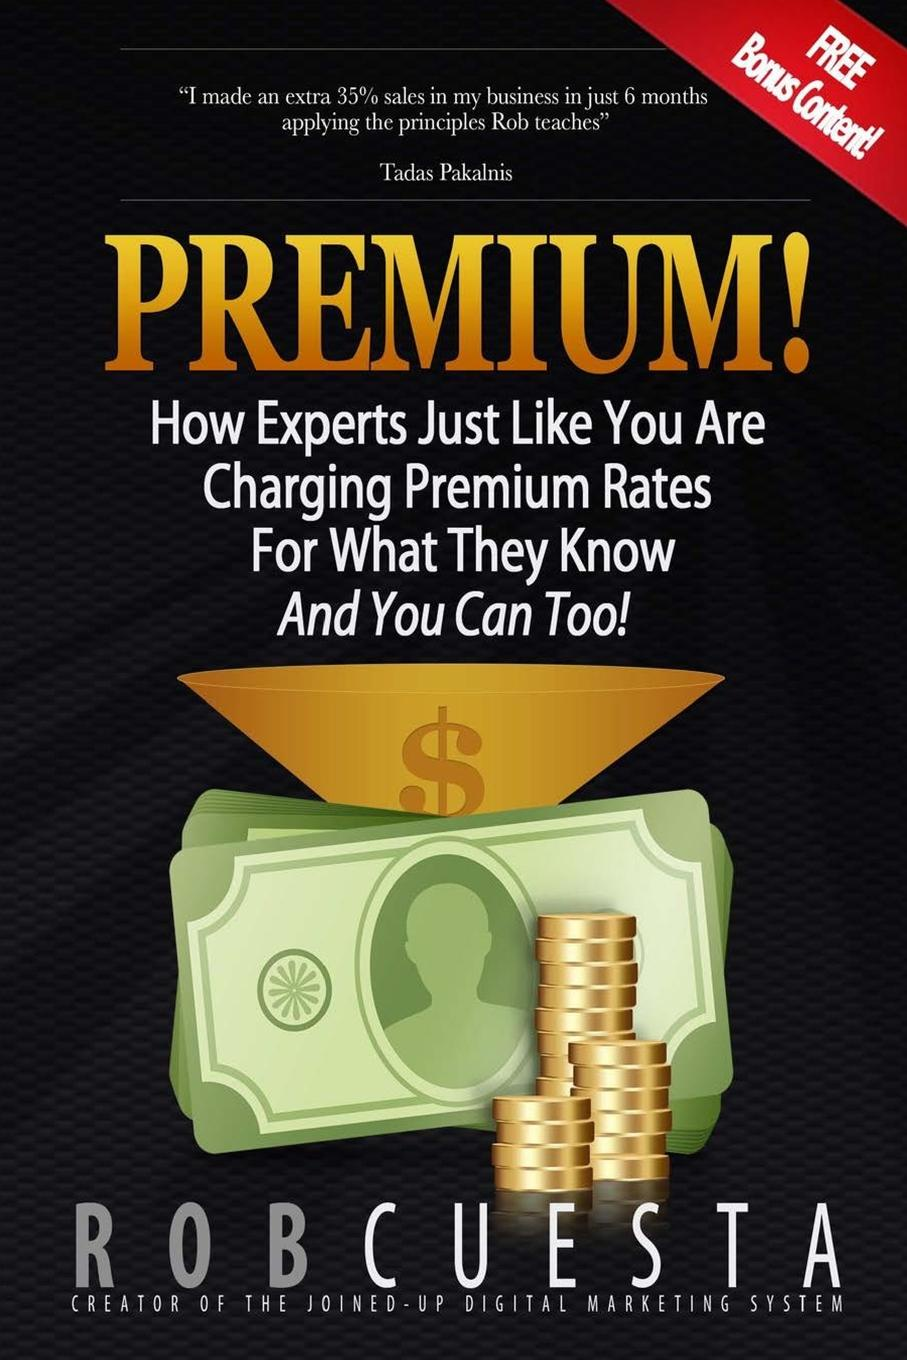 Rob Cuesta Premium!. How Experts Just Like You Are Charging Premium Rates For What They Know And You Can Too! paul turner make your people before you make your products using talent management to achieve competitive advantage in global organizations